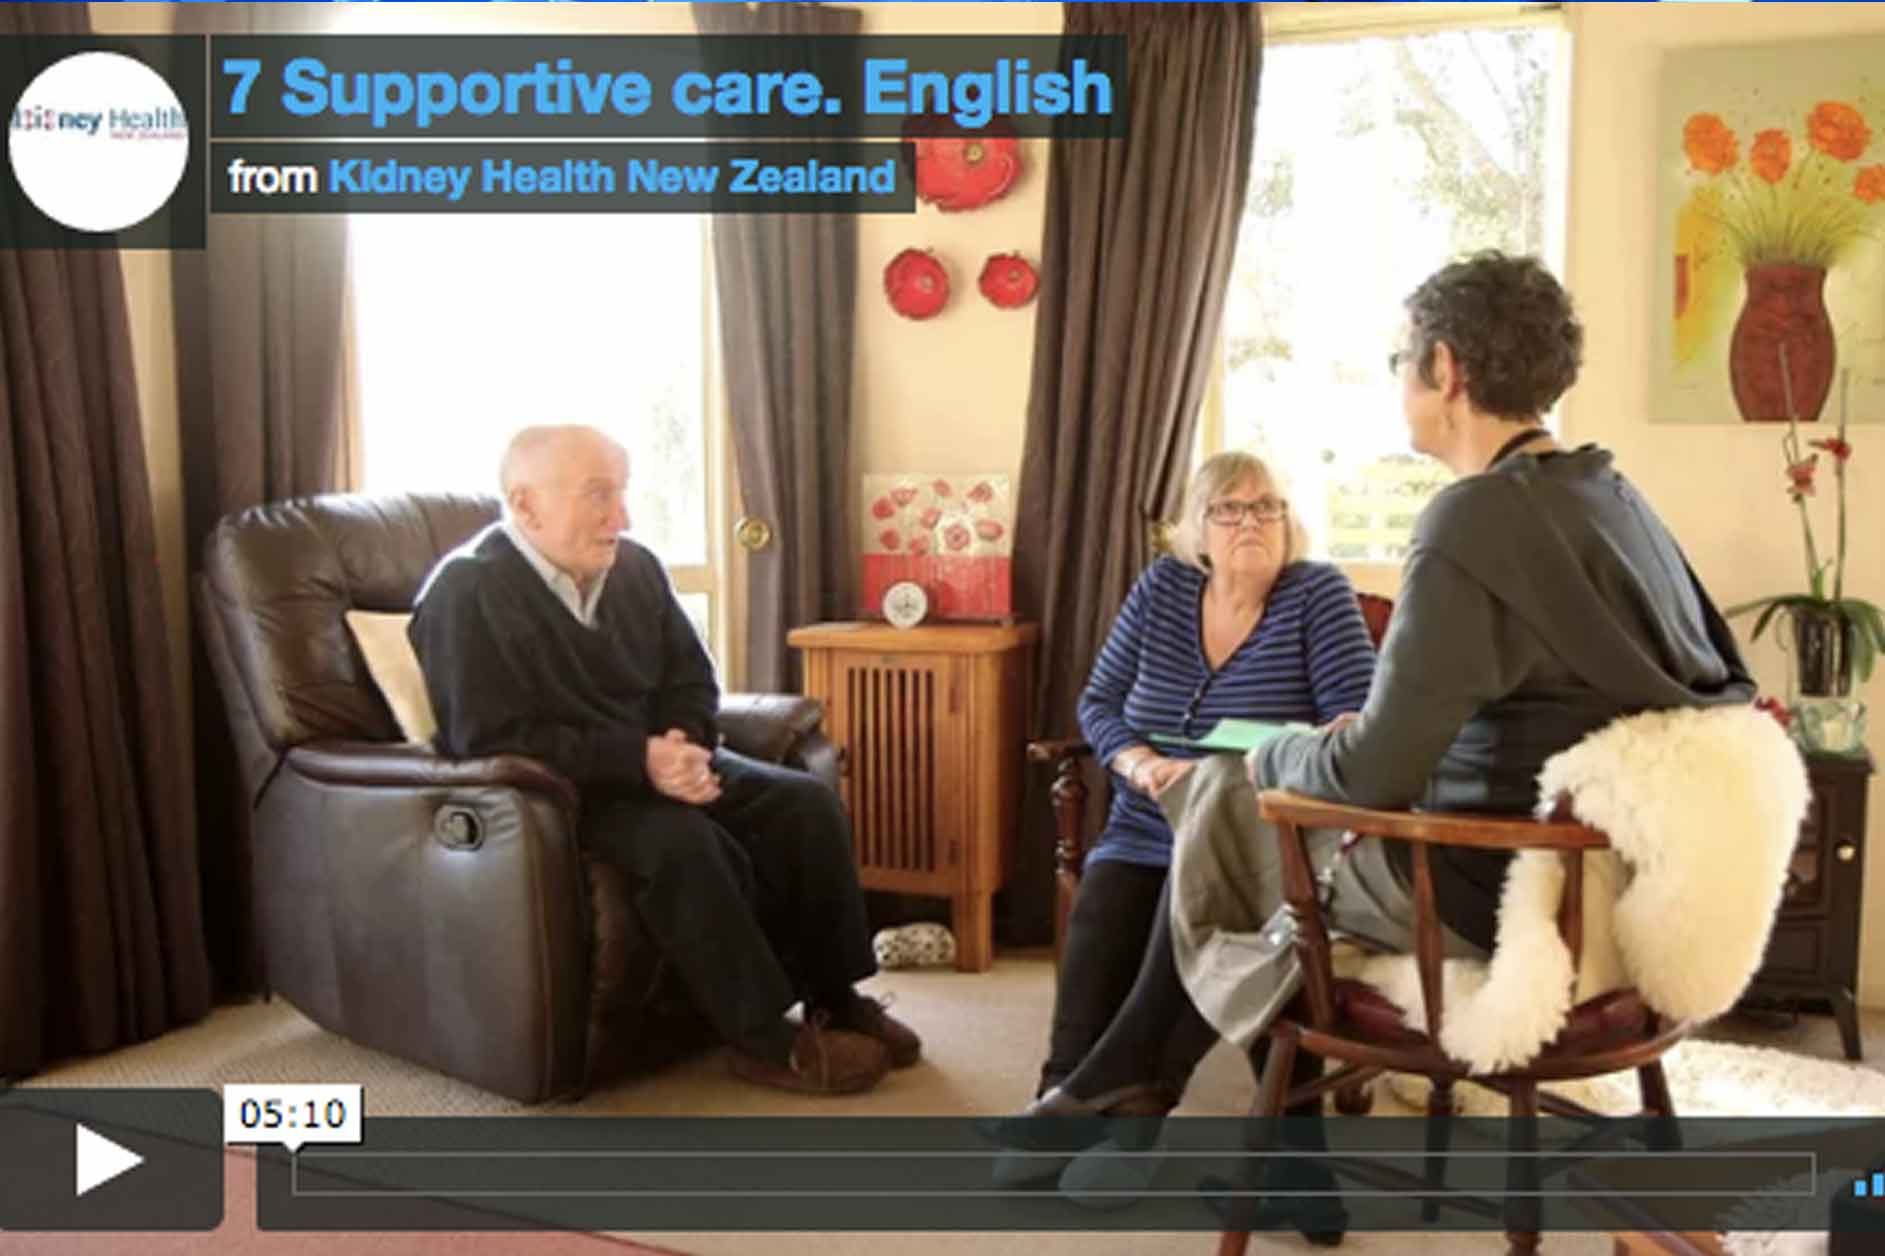 Supportive care for end stage renal disease